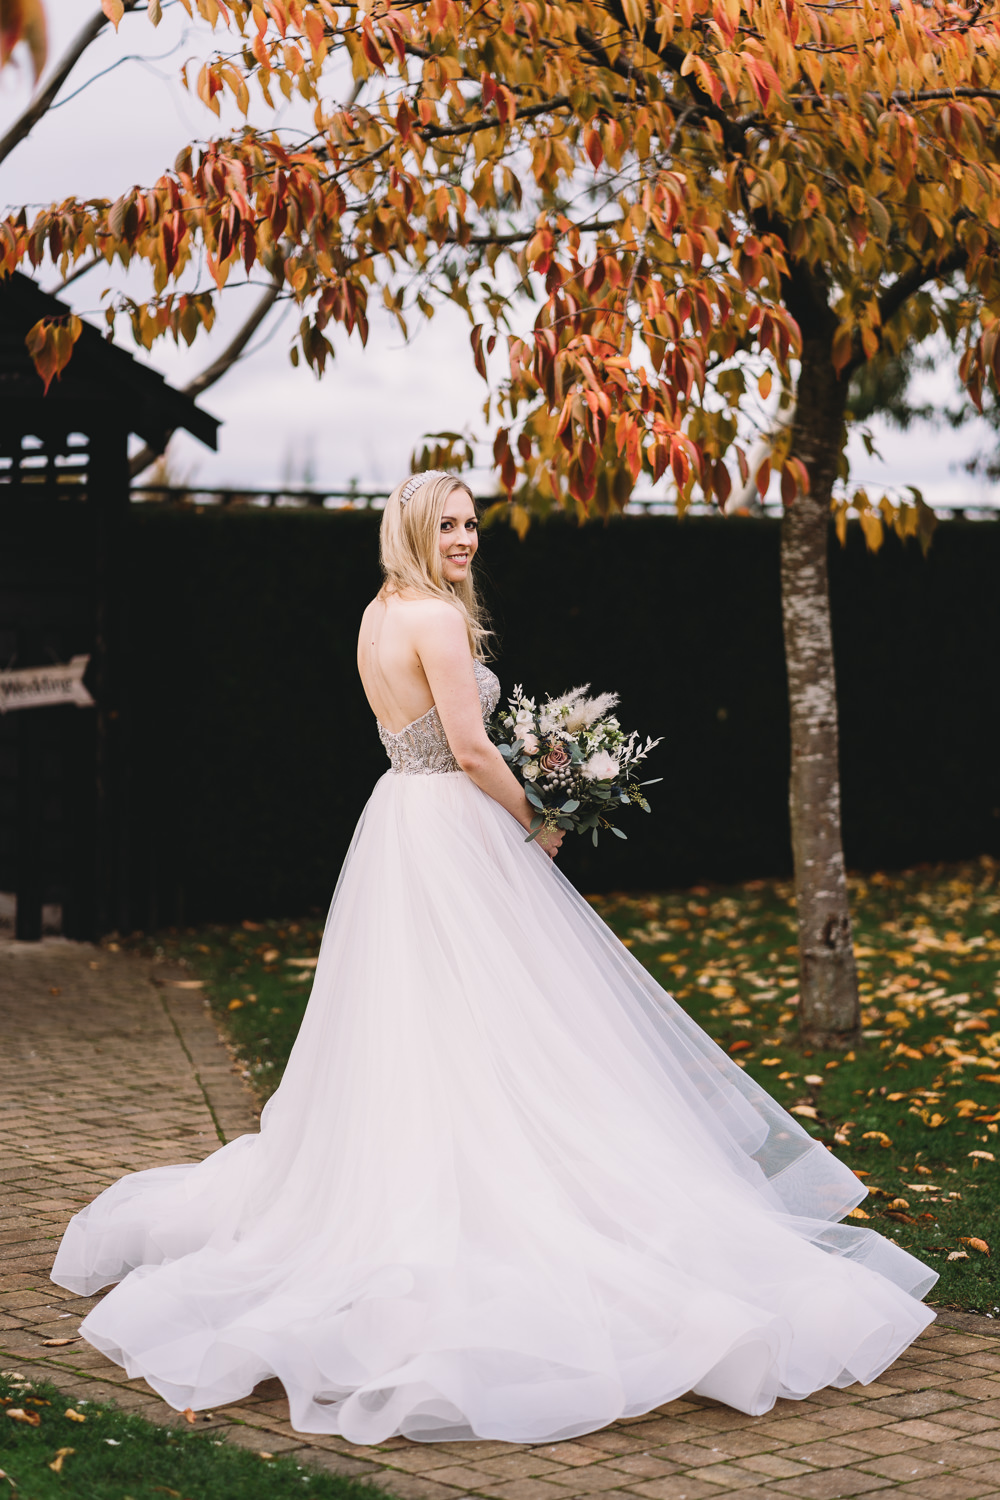 Dress Gown Bride Bridal Princess Strapless Tulle Skirt Maidens Barn Wedding Sophie Oldhamstead Photography